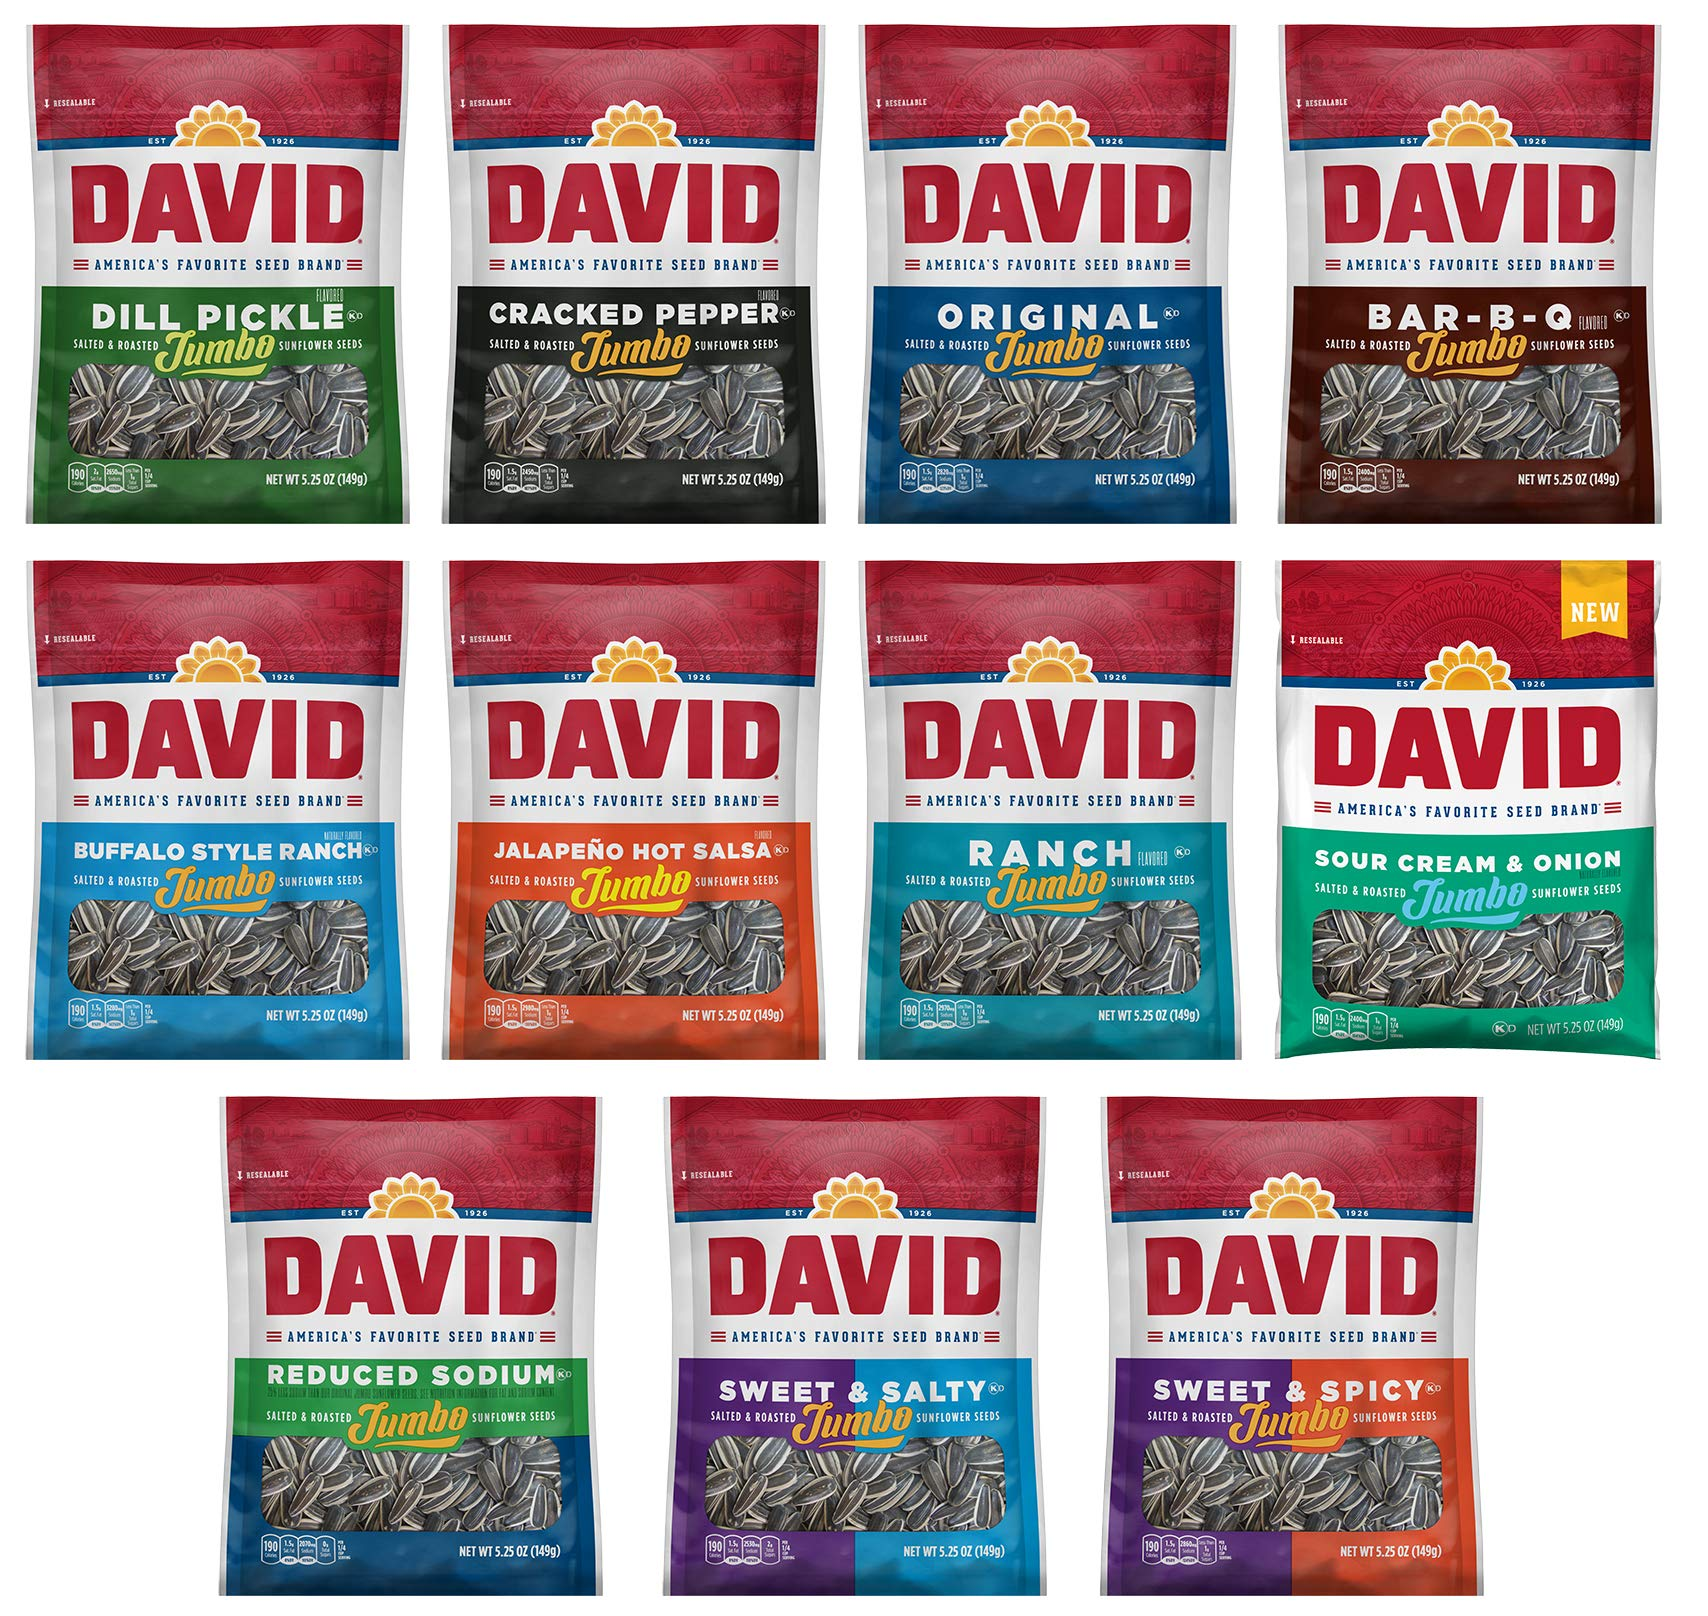 Peaceful Squirrel Variety, DAVID Sunflower Seeds jumbo Variety of 11 Flavors - 5.25 Ounce by Peaceful Squirrel